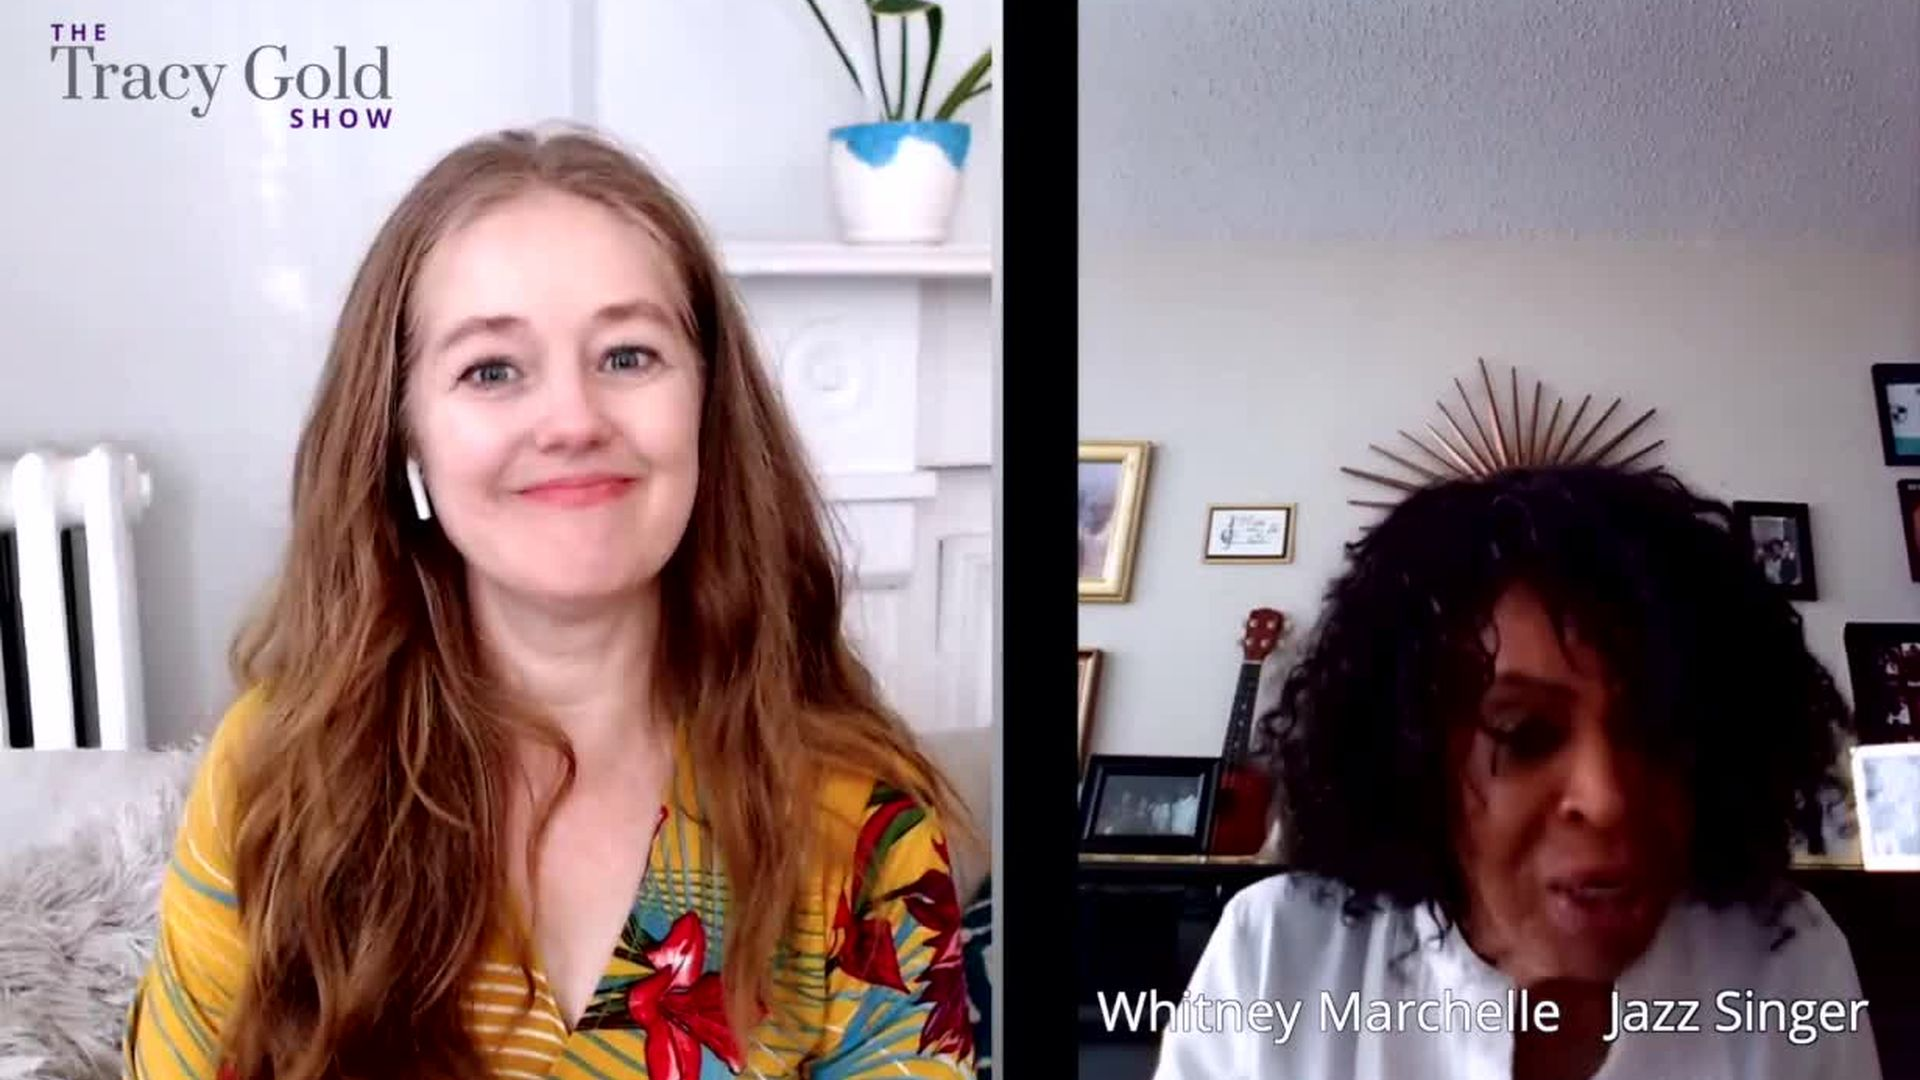 It's Never Too Late to Pursue Your Dreams With Whitney Marchelle - Tracy Gold Show